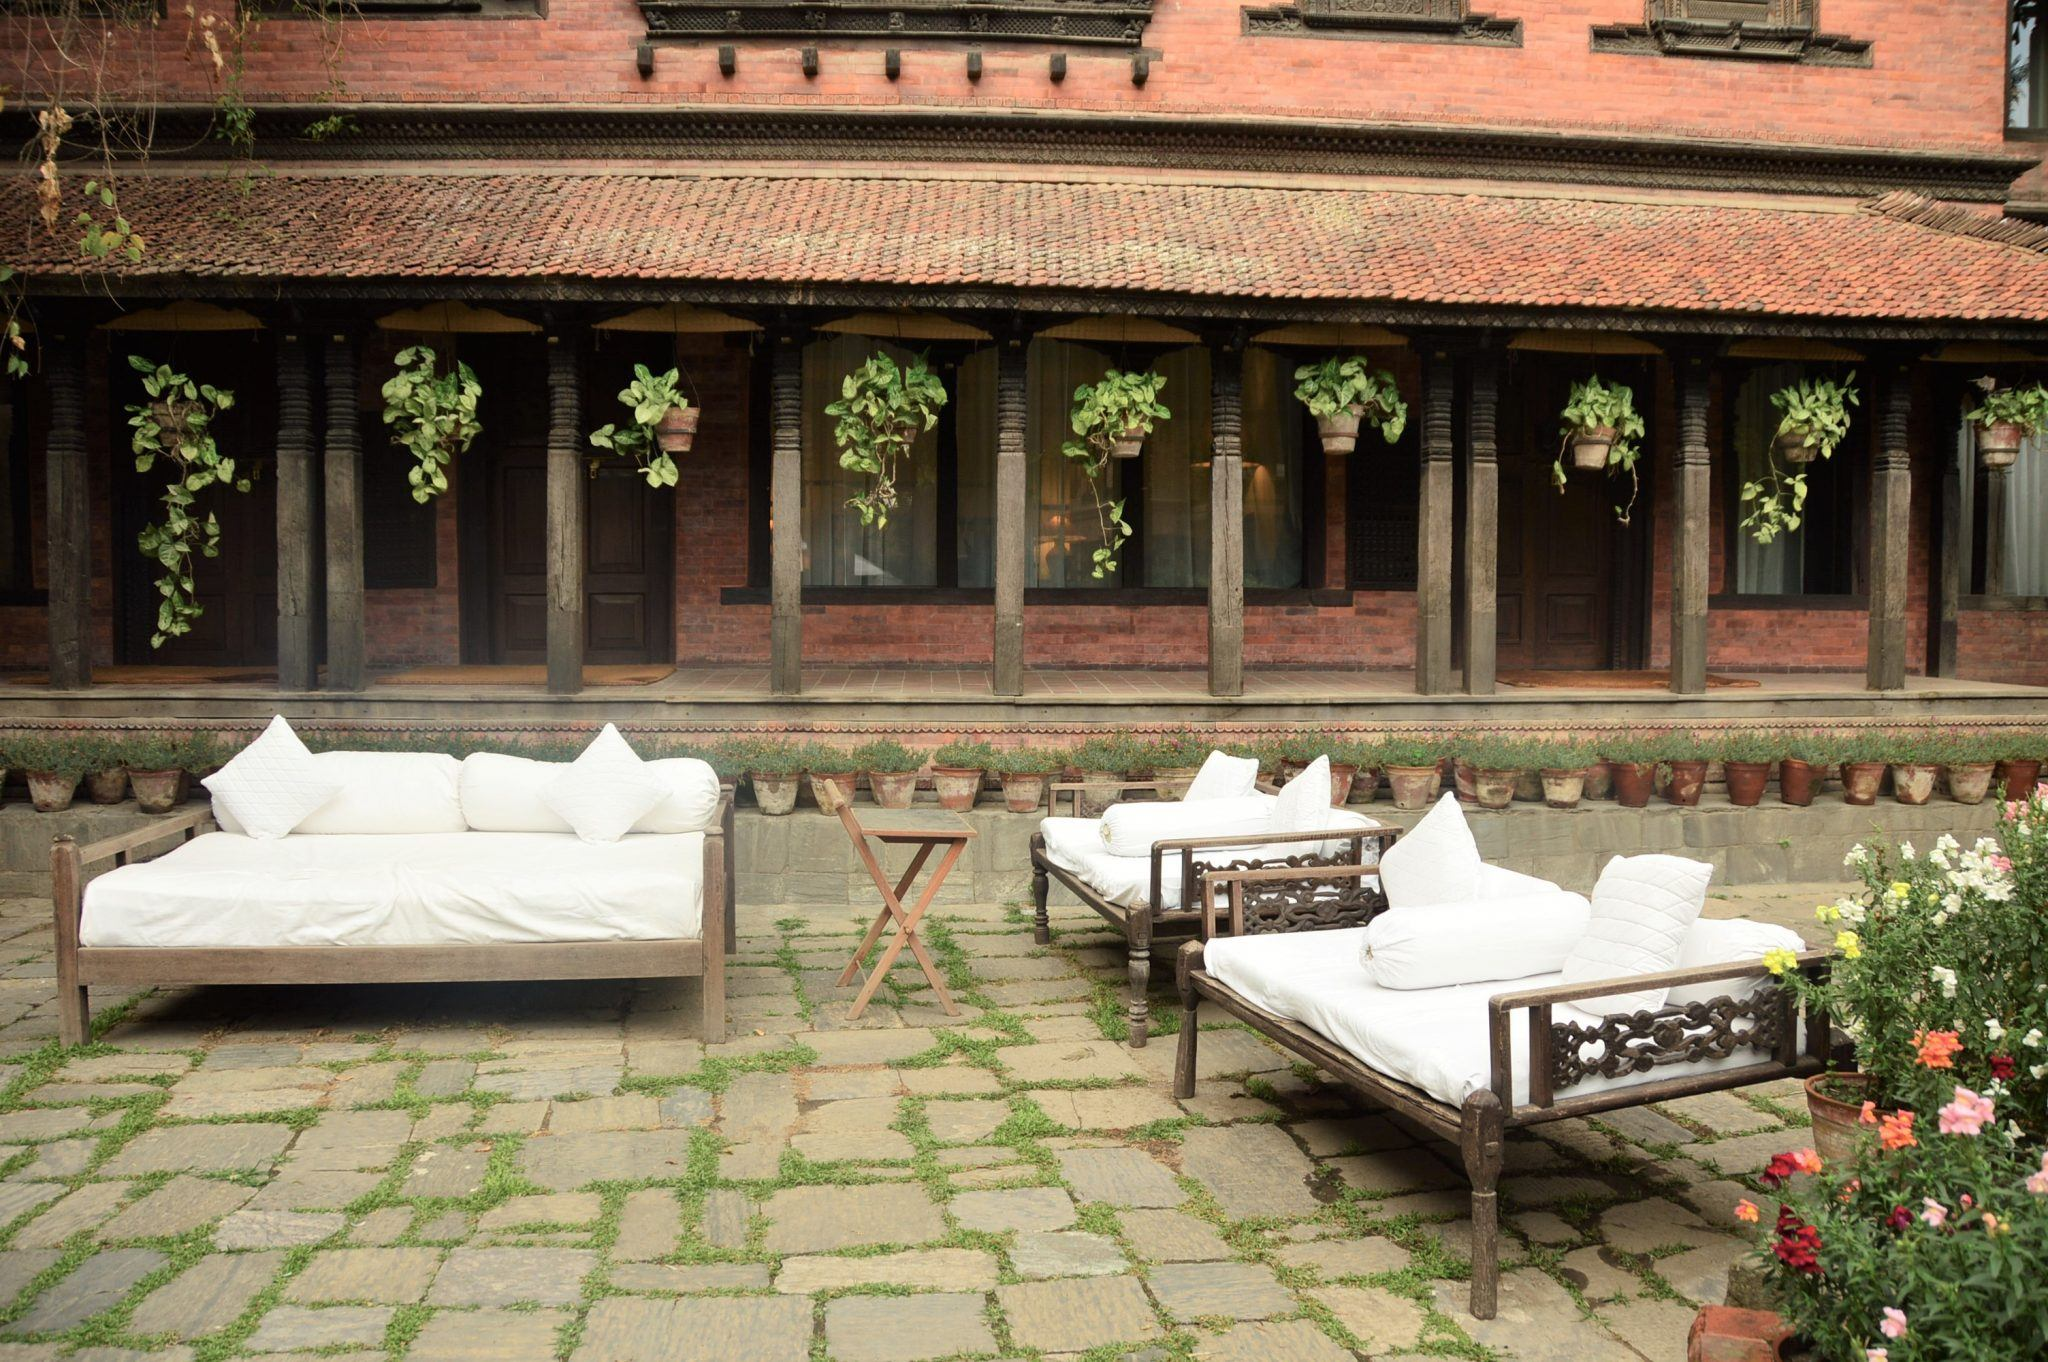 dwarika's hotel, kathmandu courtyard area with day beds